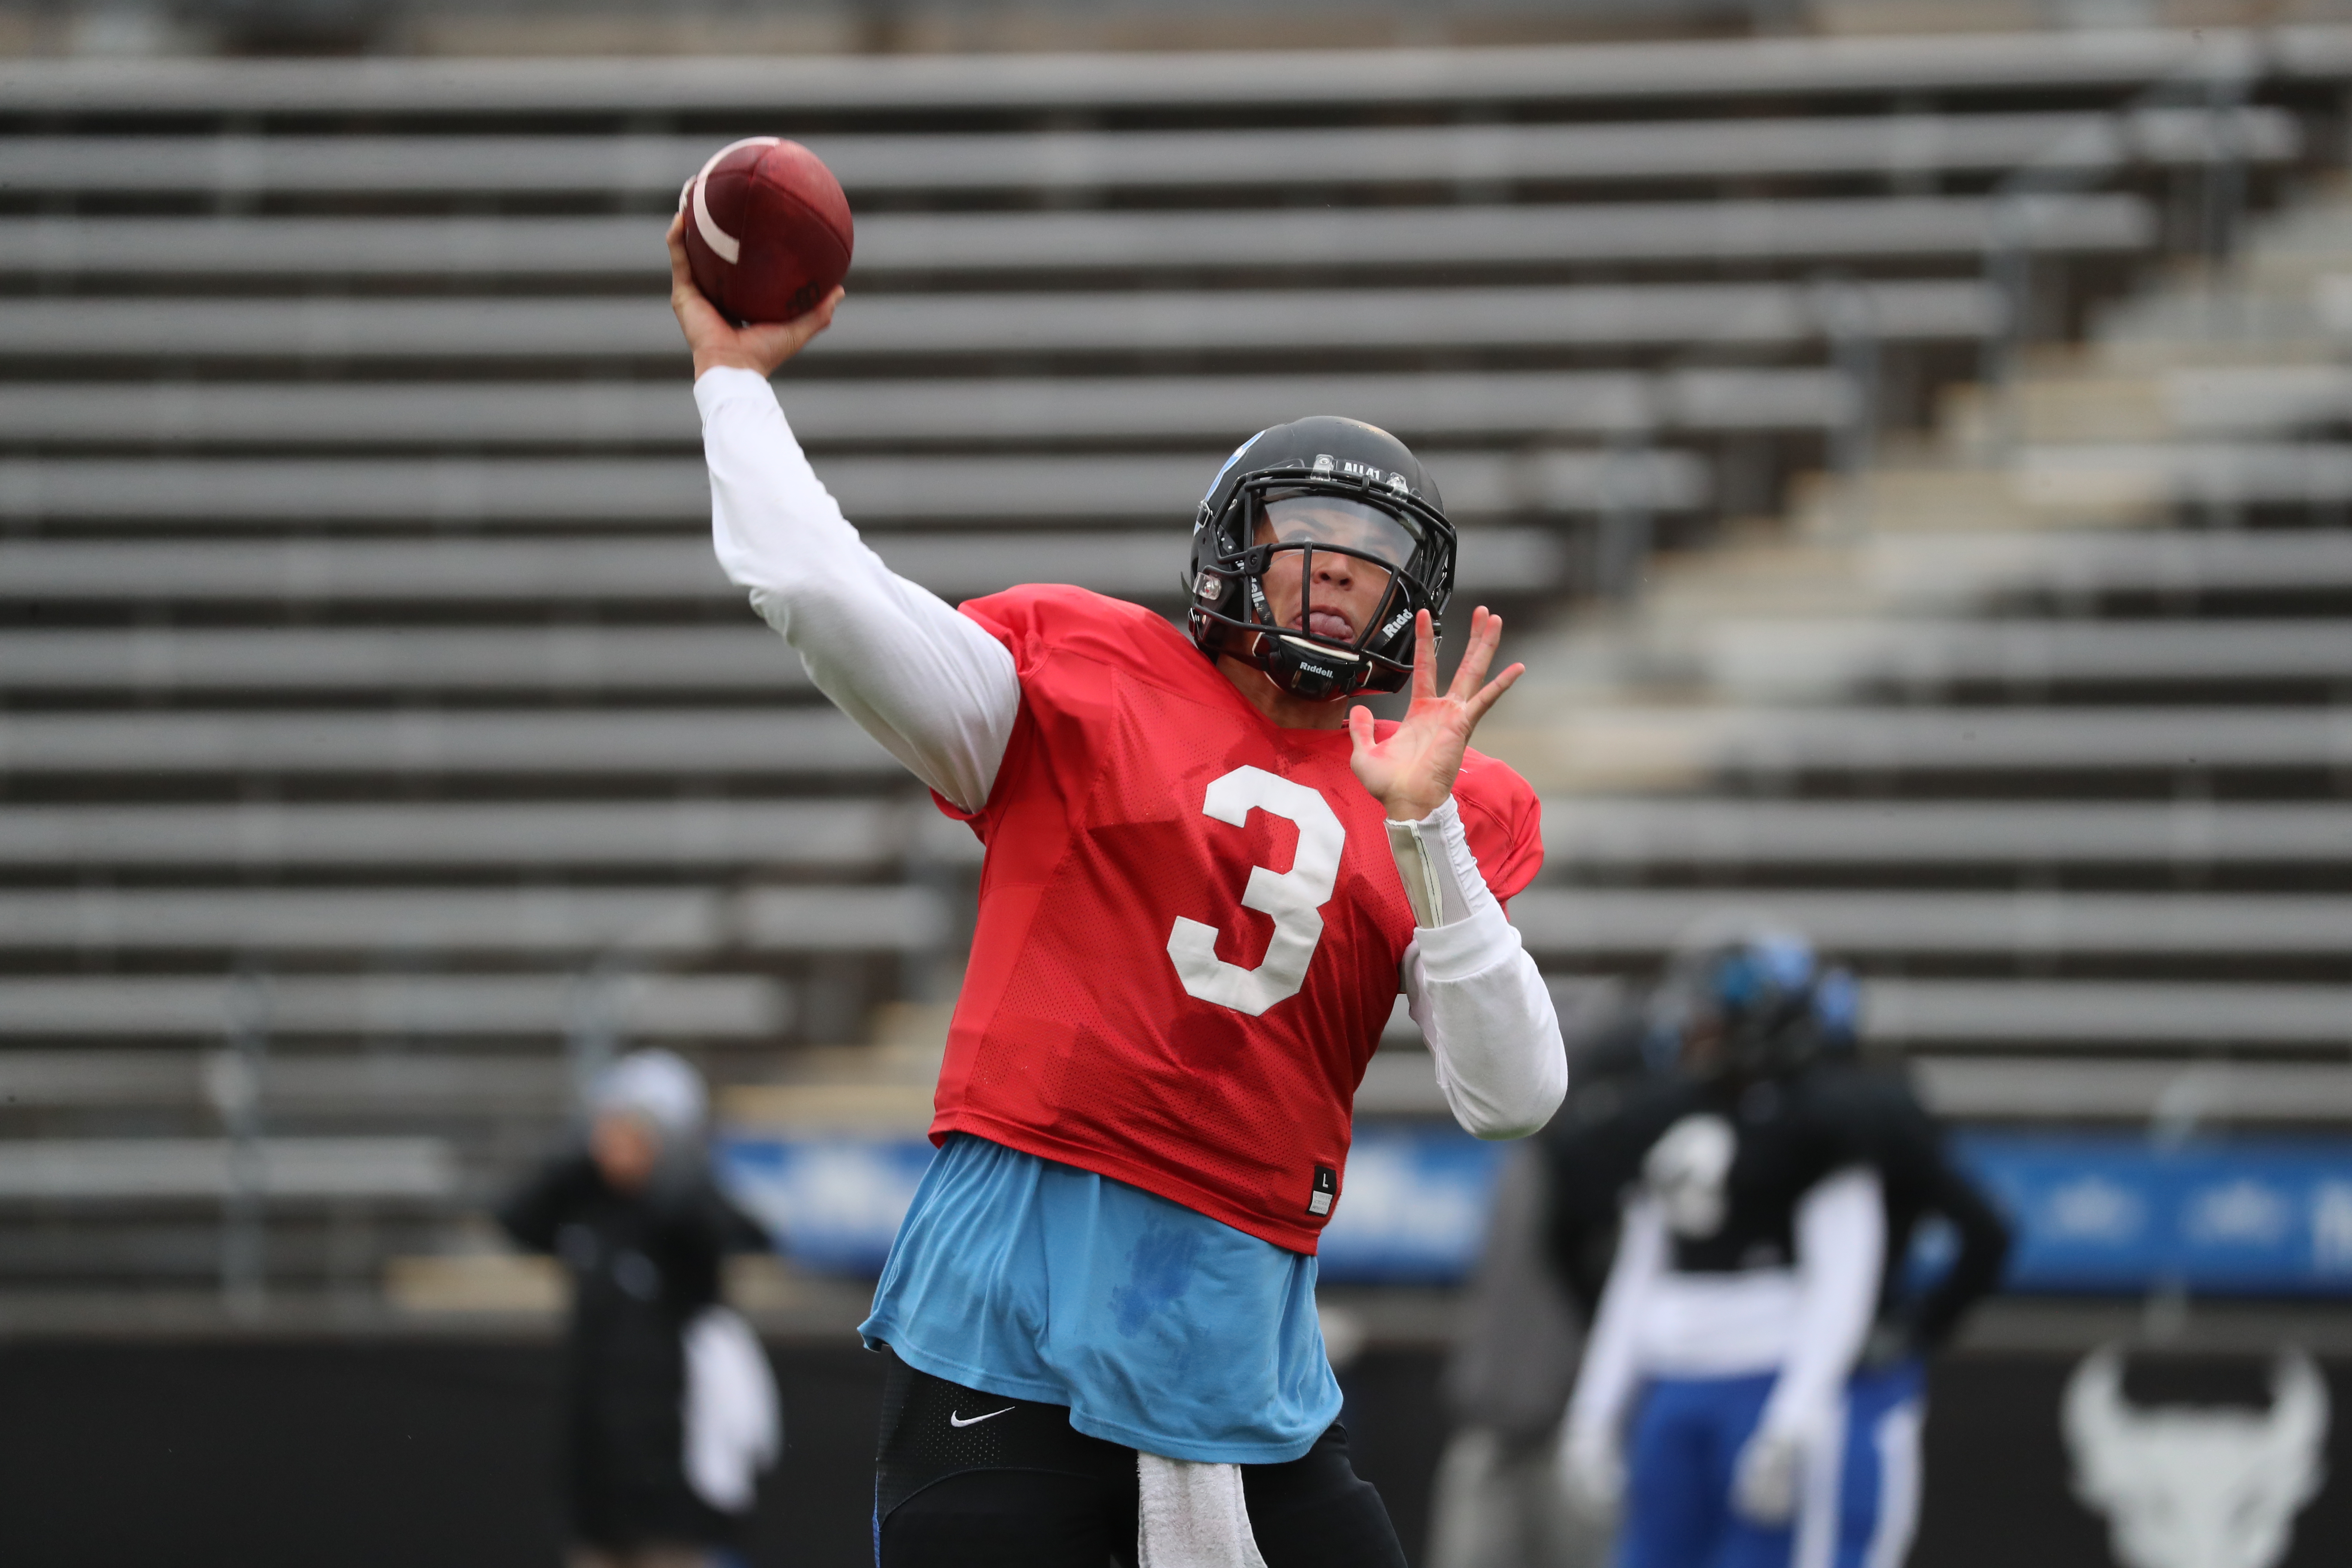 UB quarterback Tyree Jackson works out with his team Saturday. (James P. McCoy/Buffalo News)